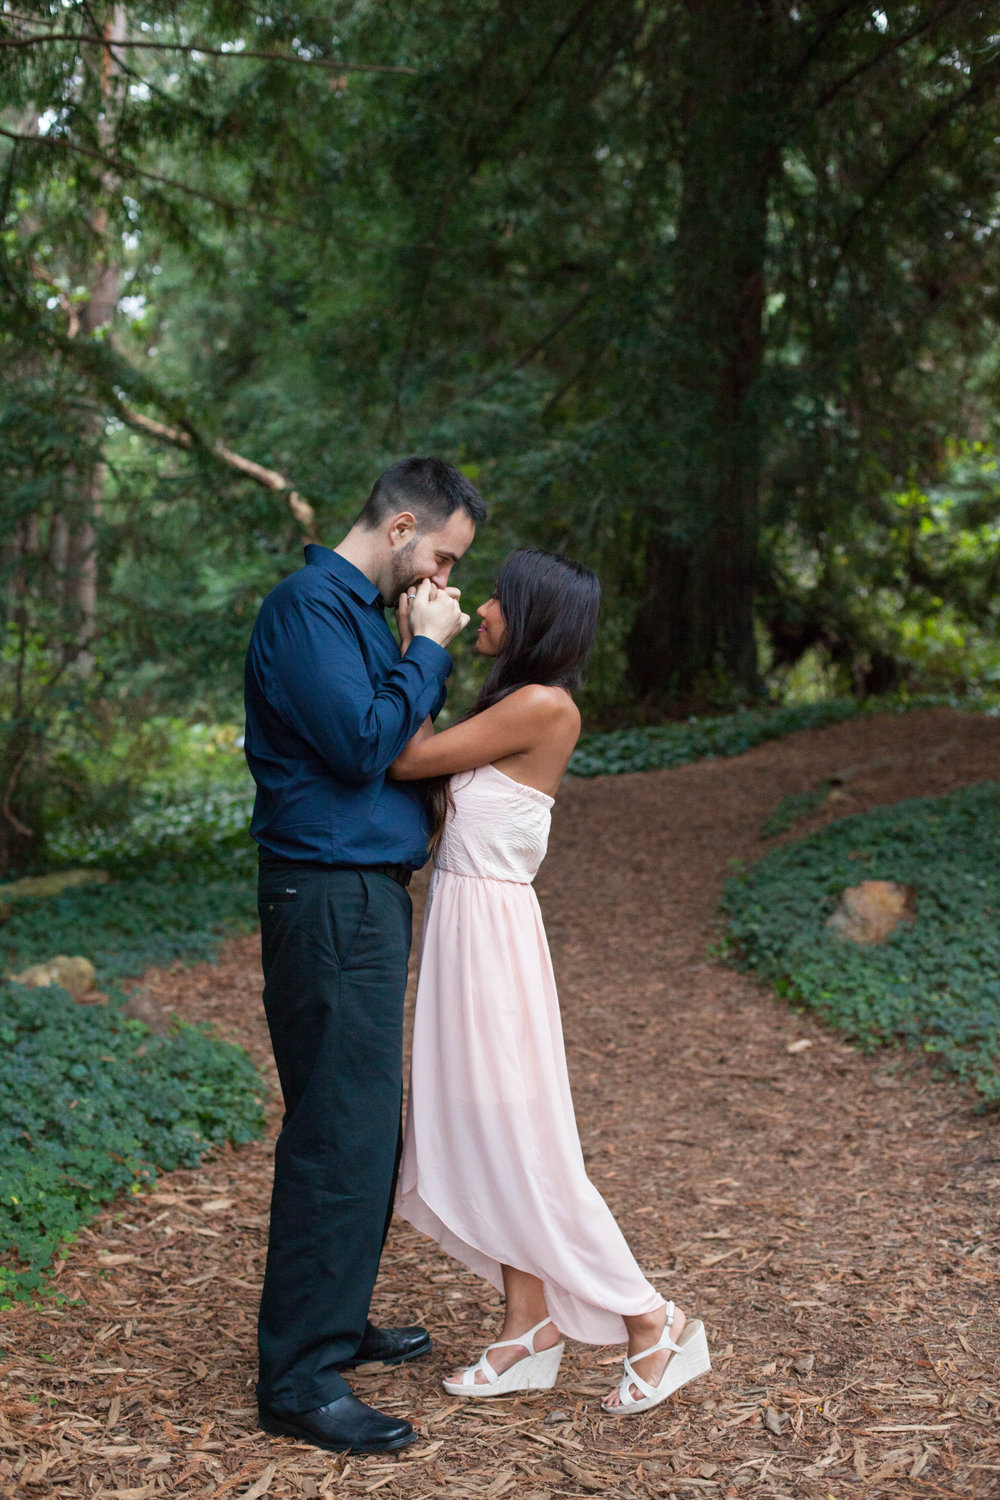 Meo Baaklini-San Francisco Engagement Photographer-Botanical Gardens11.jpg